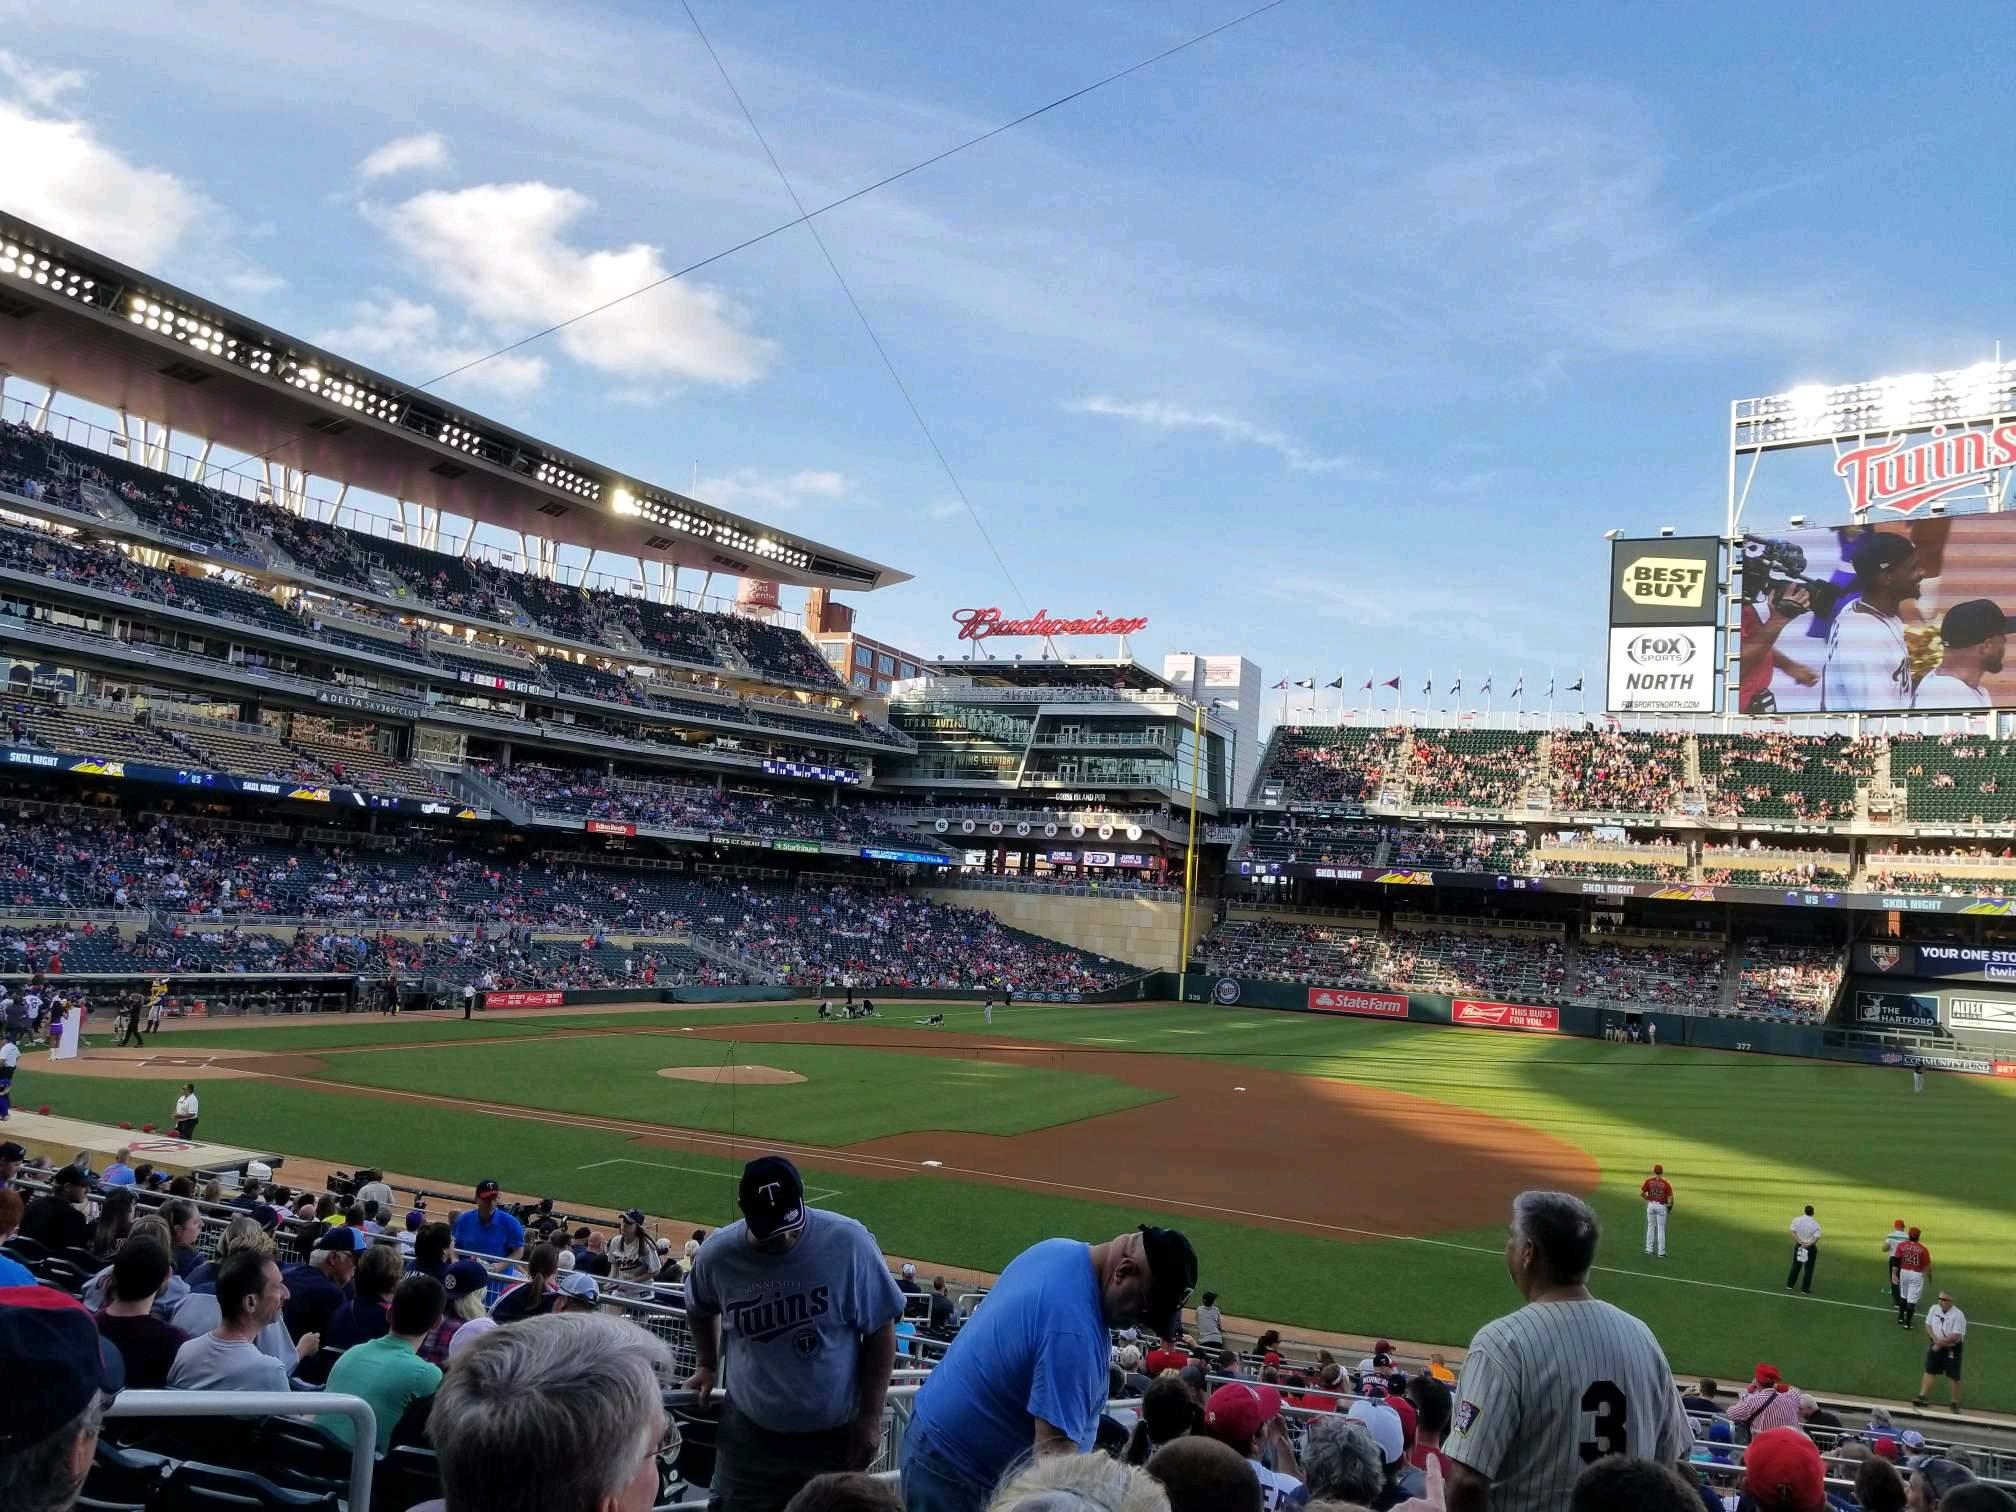 Target Field Section 106 Row 11 Seat 14